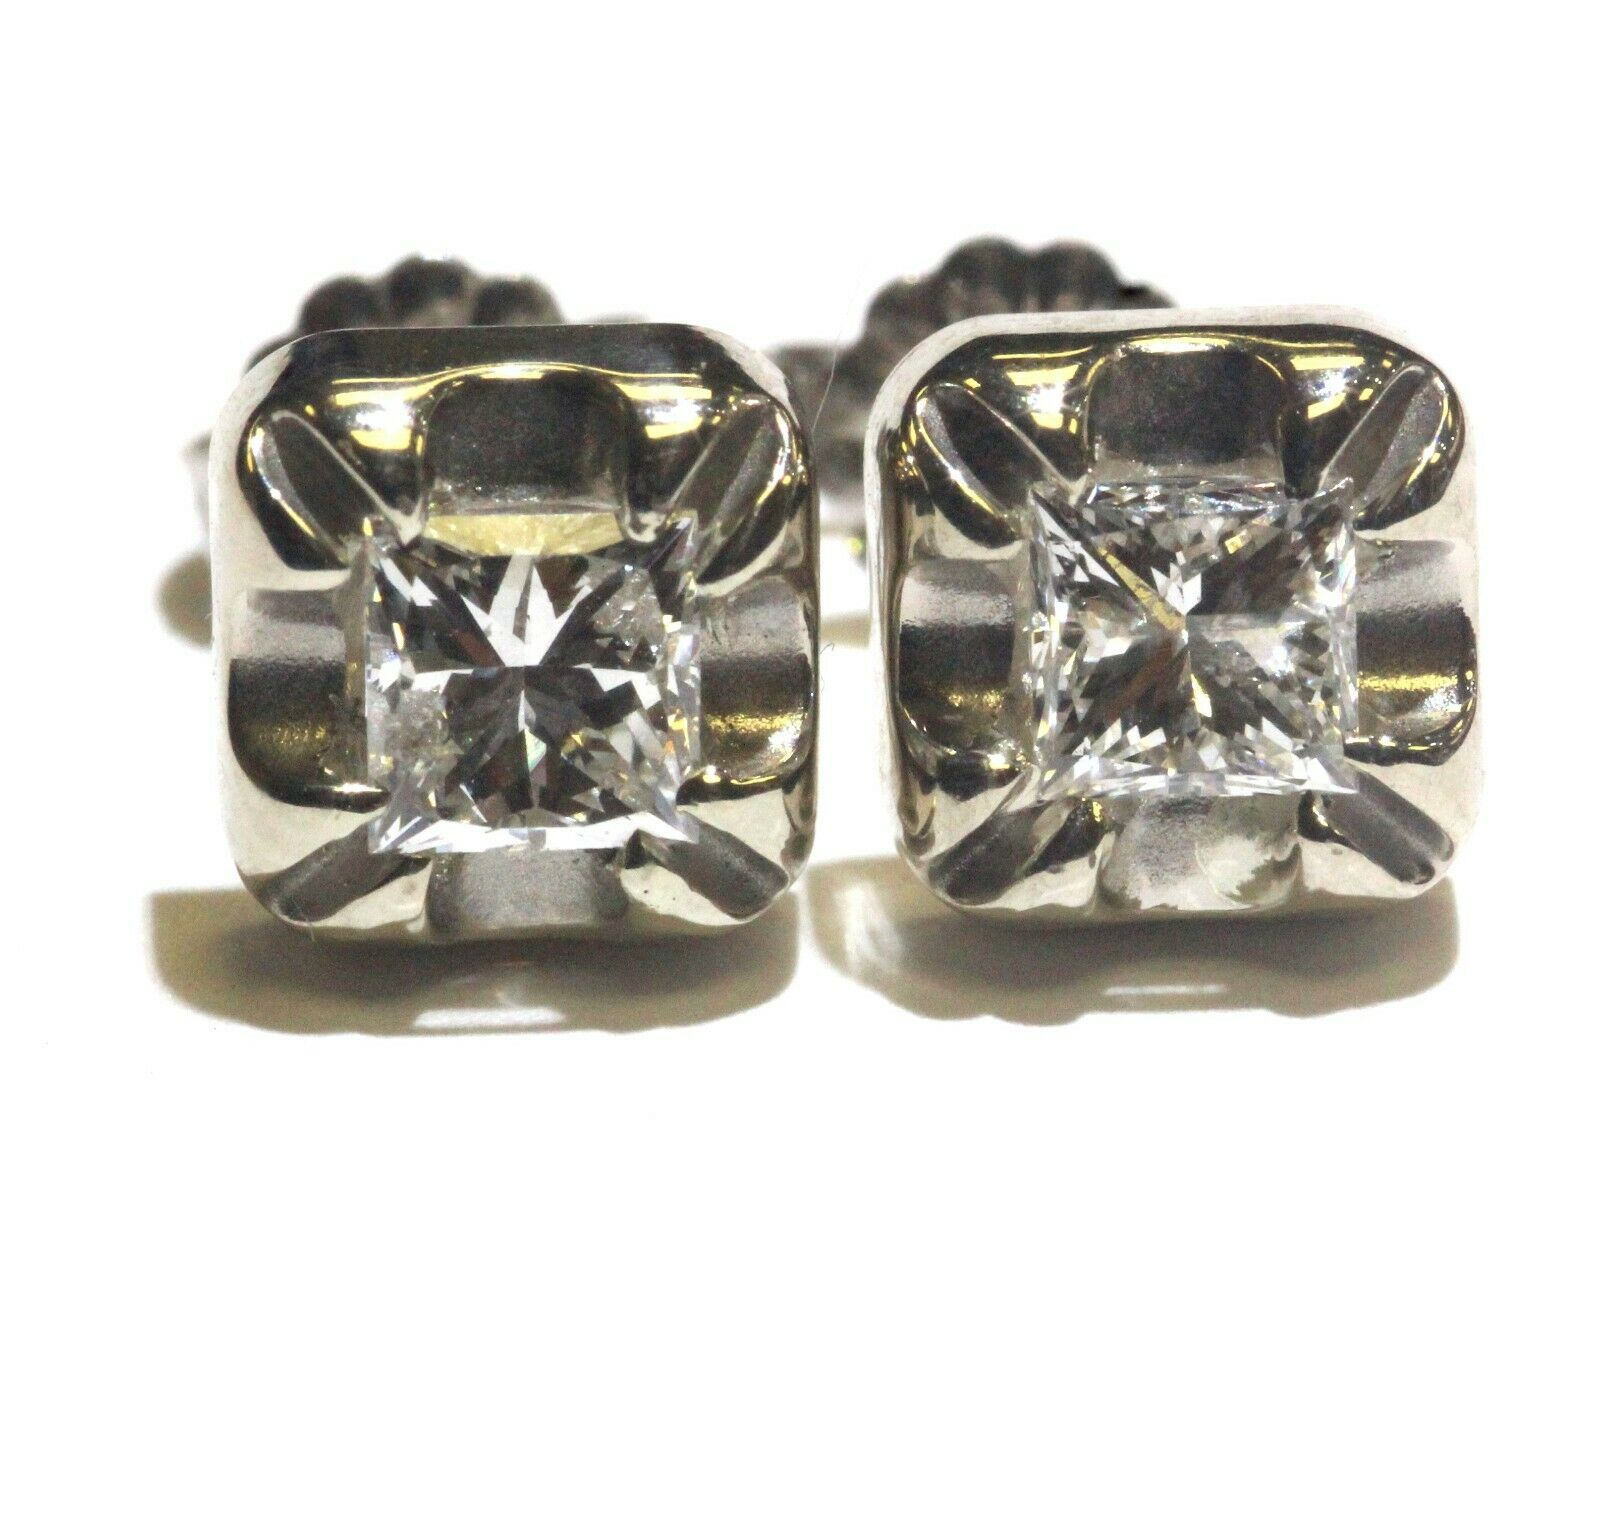 10k white gold 1.07ct I1 F princess Illusion head diamond stud earrings vintage